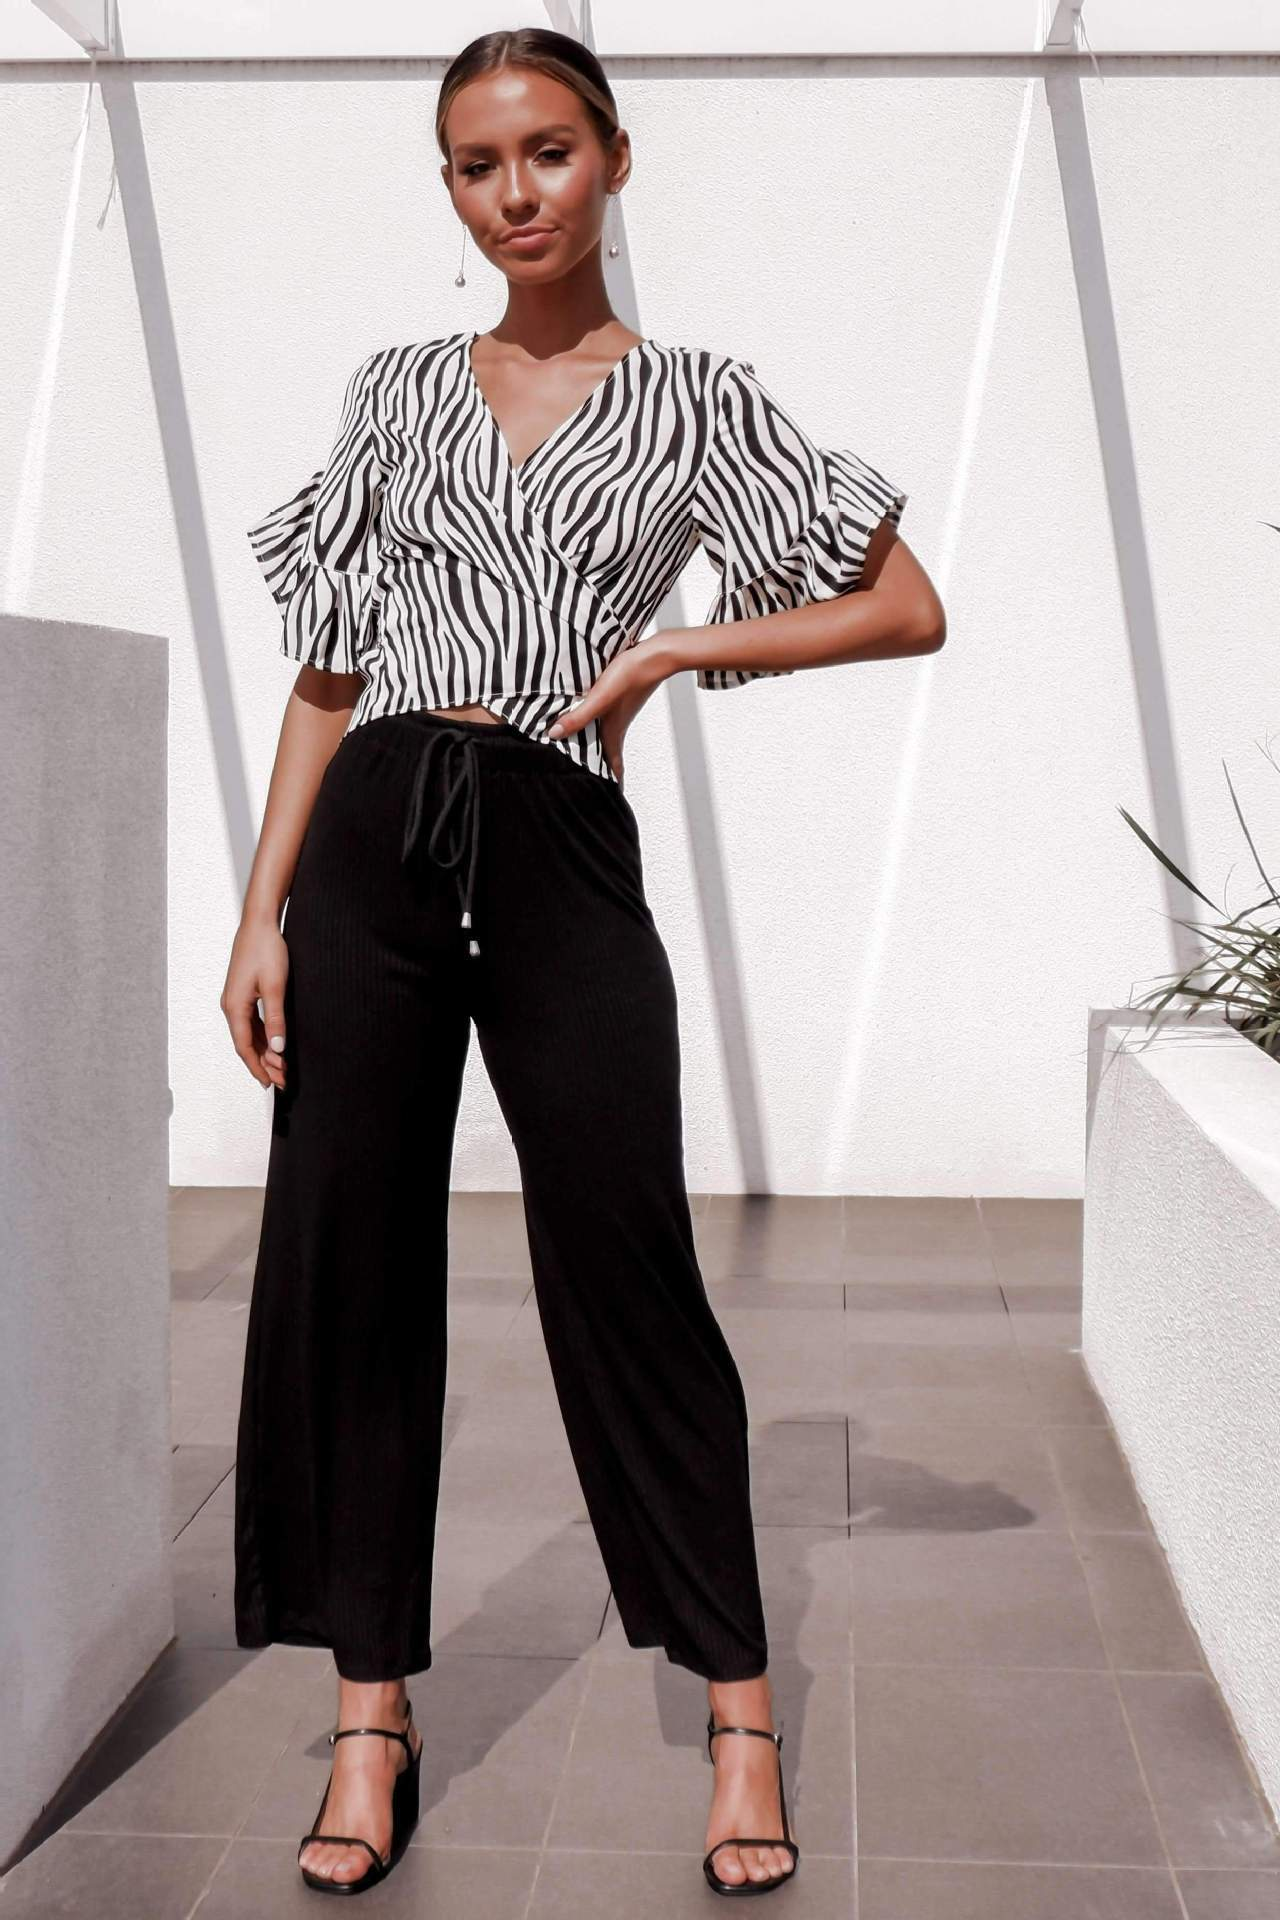 Women Elegant Shirt Print And Zebra Stripes Slim Fit Tops Summer Beach Vacation Navel Sexy Shirts Ruffles Half Sleeve Clothes in T Shirts from Women 39 s Clothing